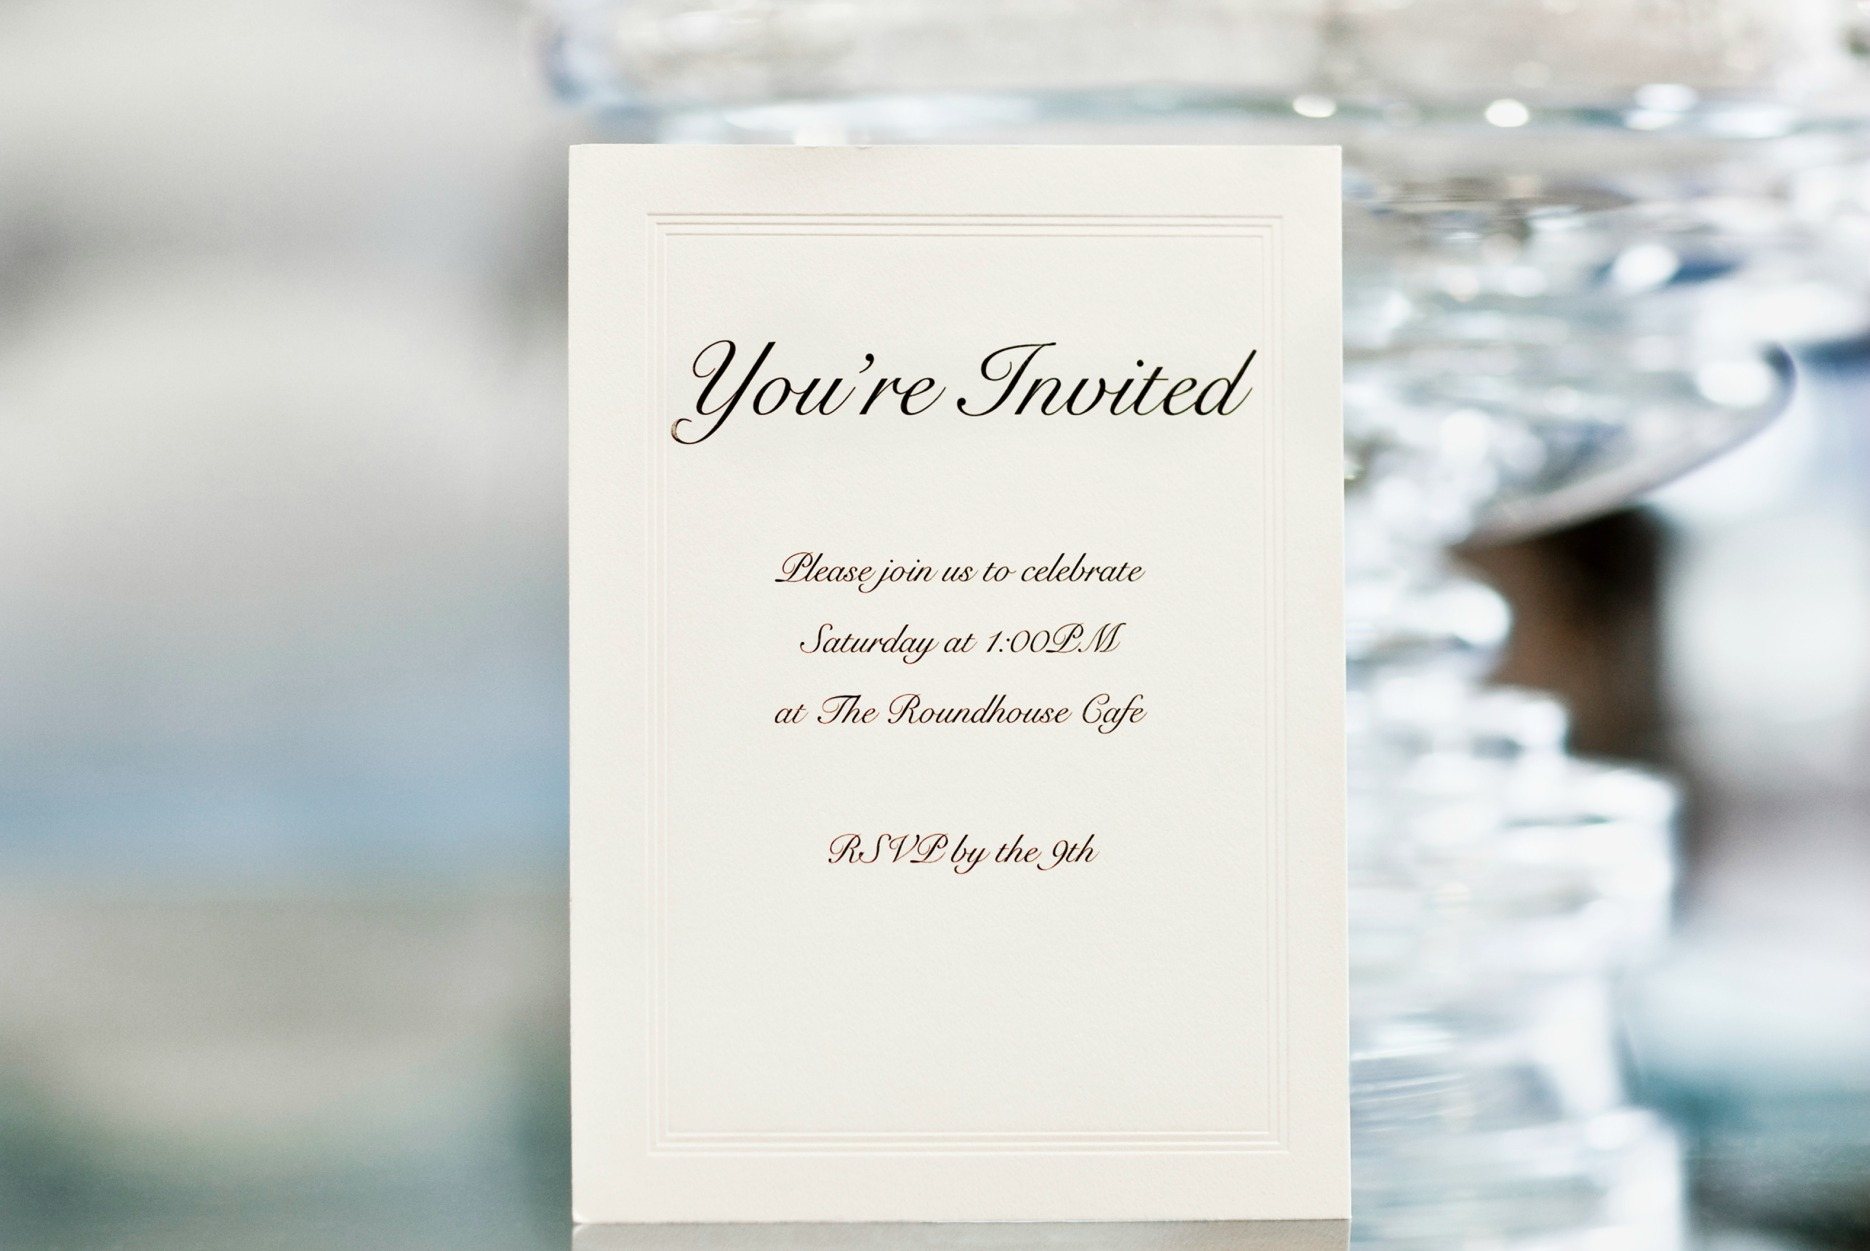 Wedding invitations - printing information - Articles - Easy Weddings